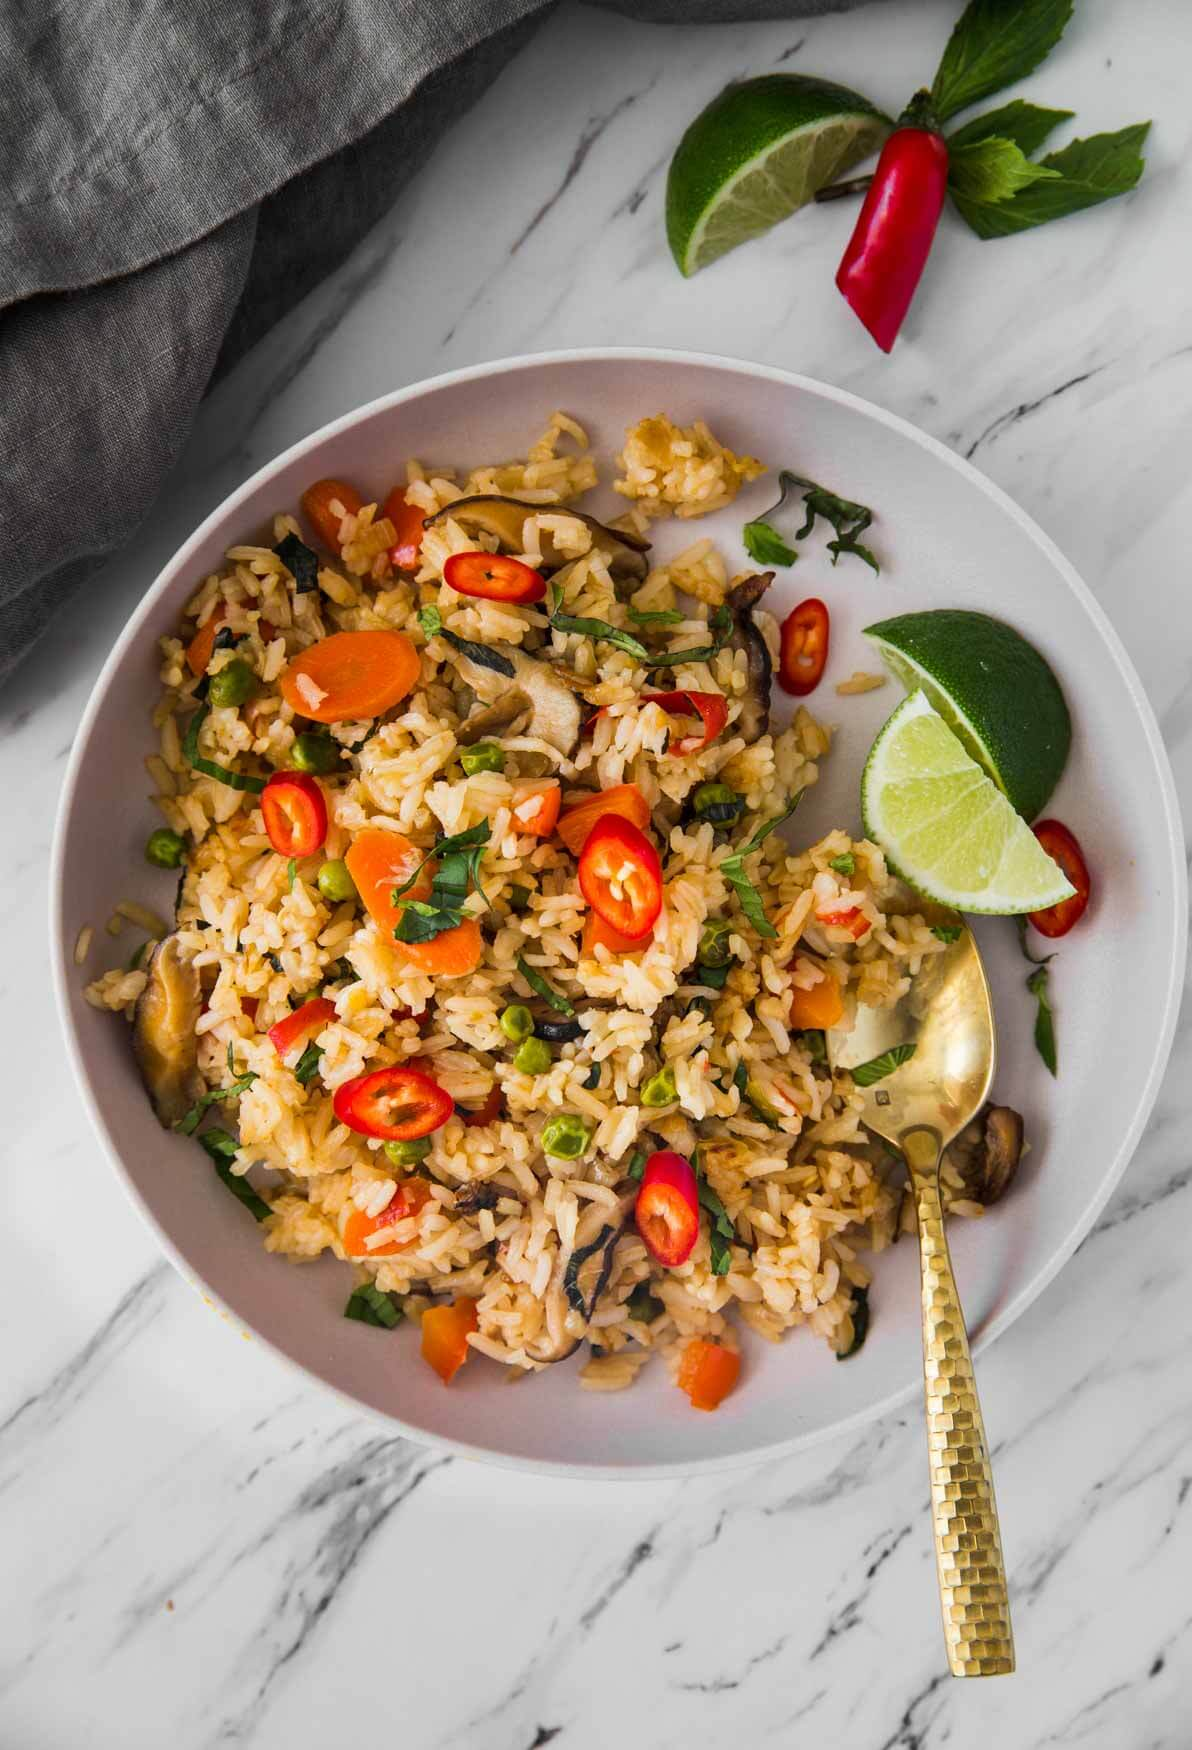 Thai fried rice with vegetables in a serving plate